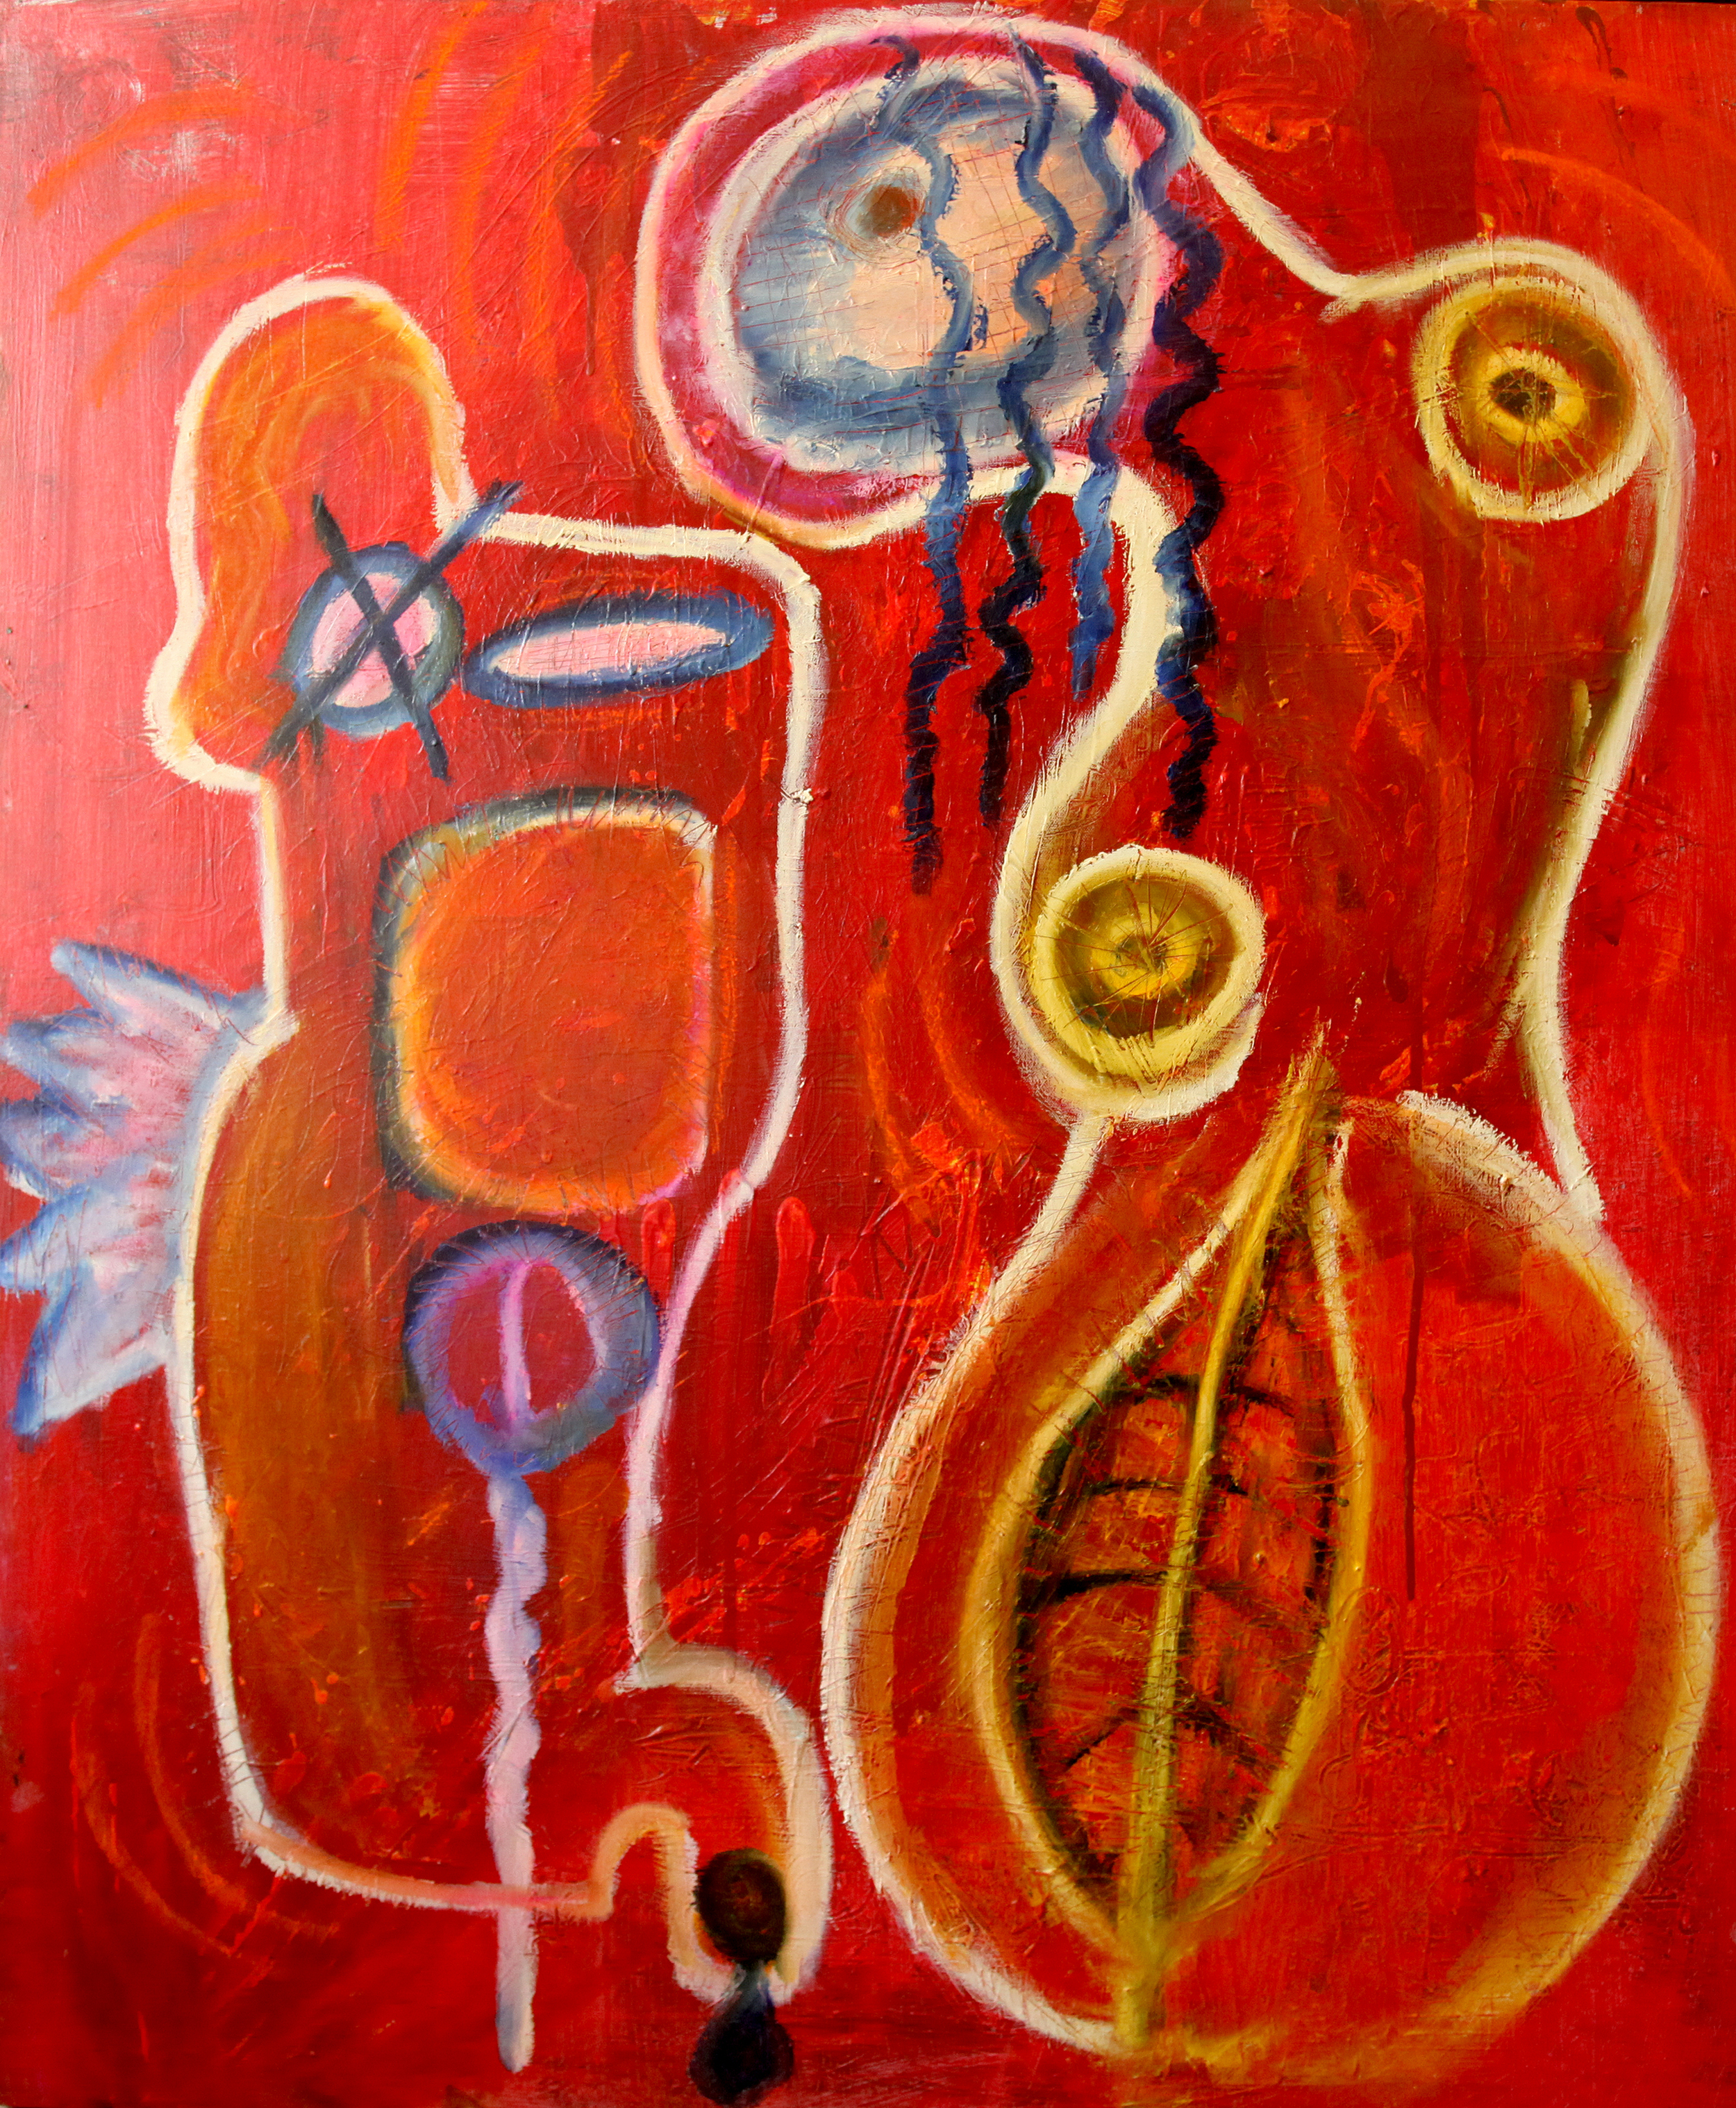 Relationships  120 x 90 Oil on canvas 2013